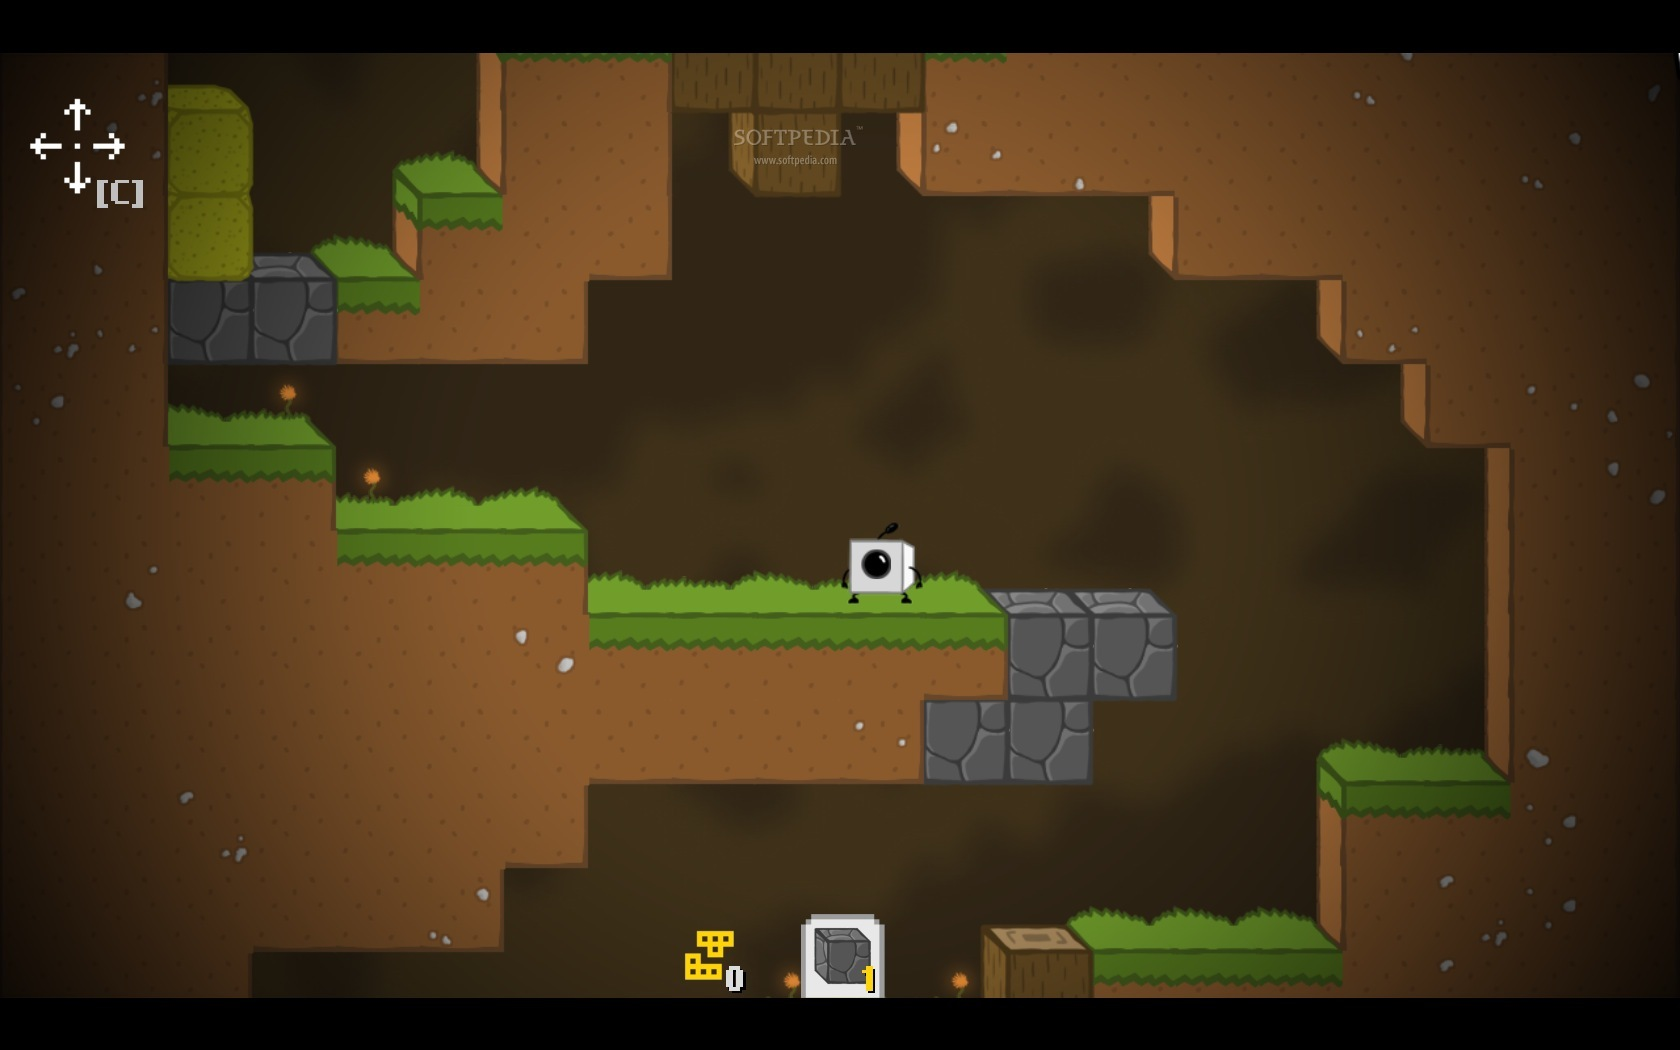 This Isnt Game >> 2d Sidescroller Terrain request | OpenGameArt.org